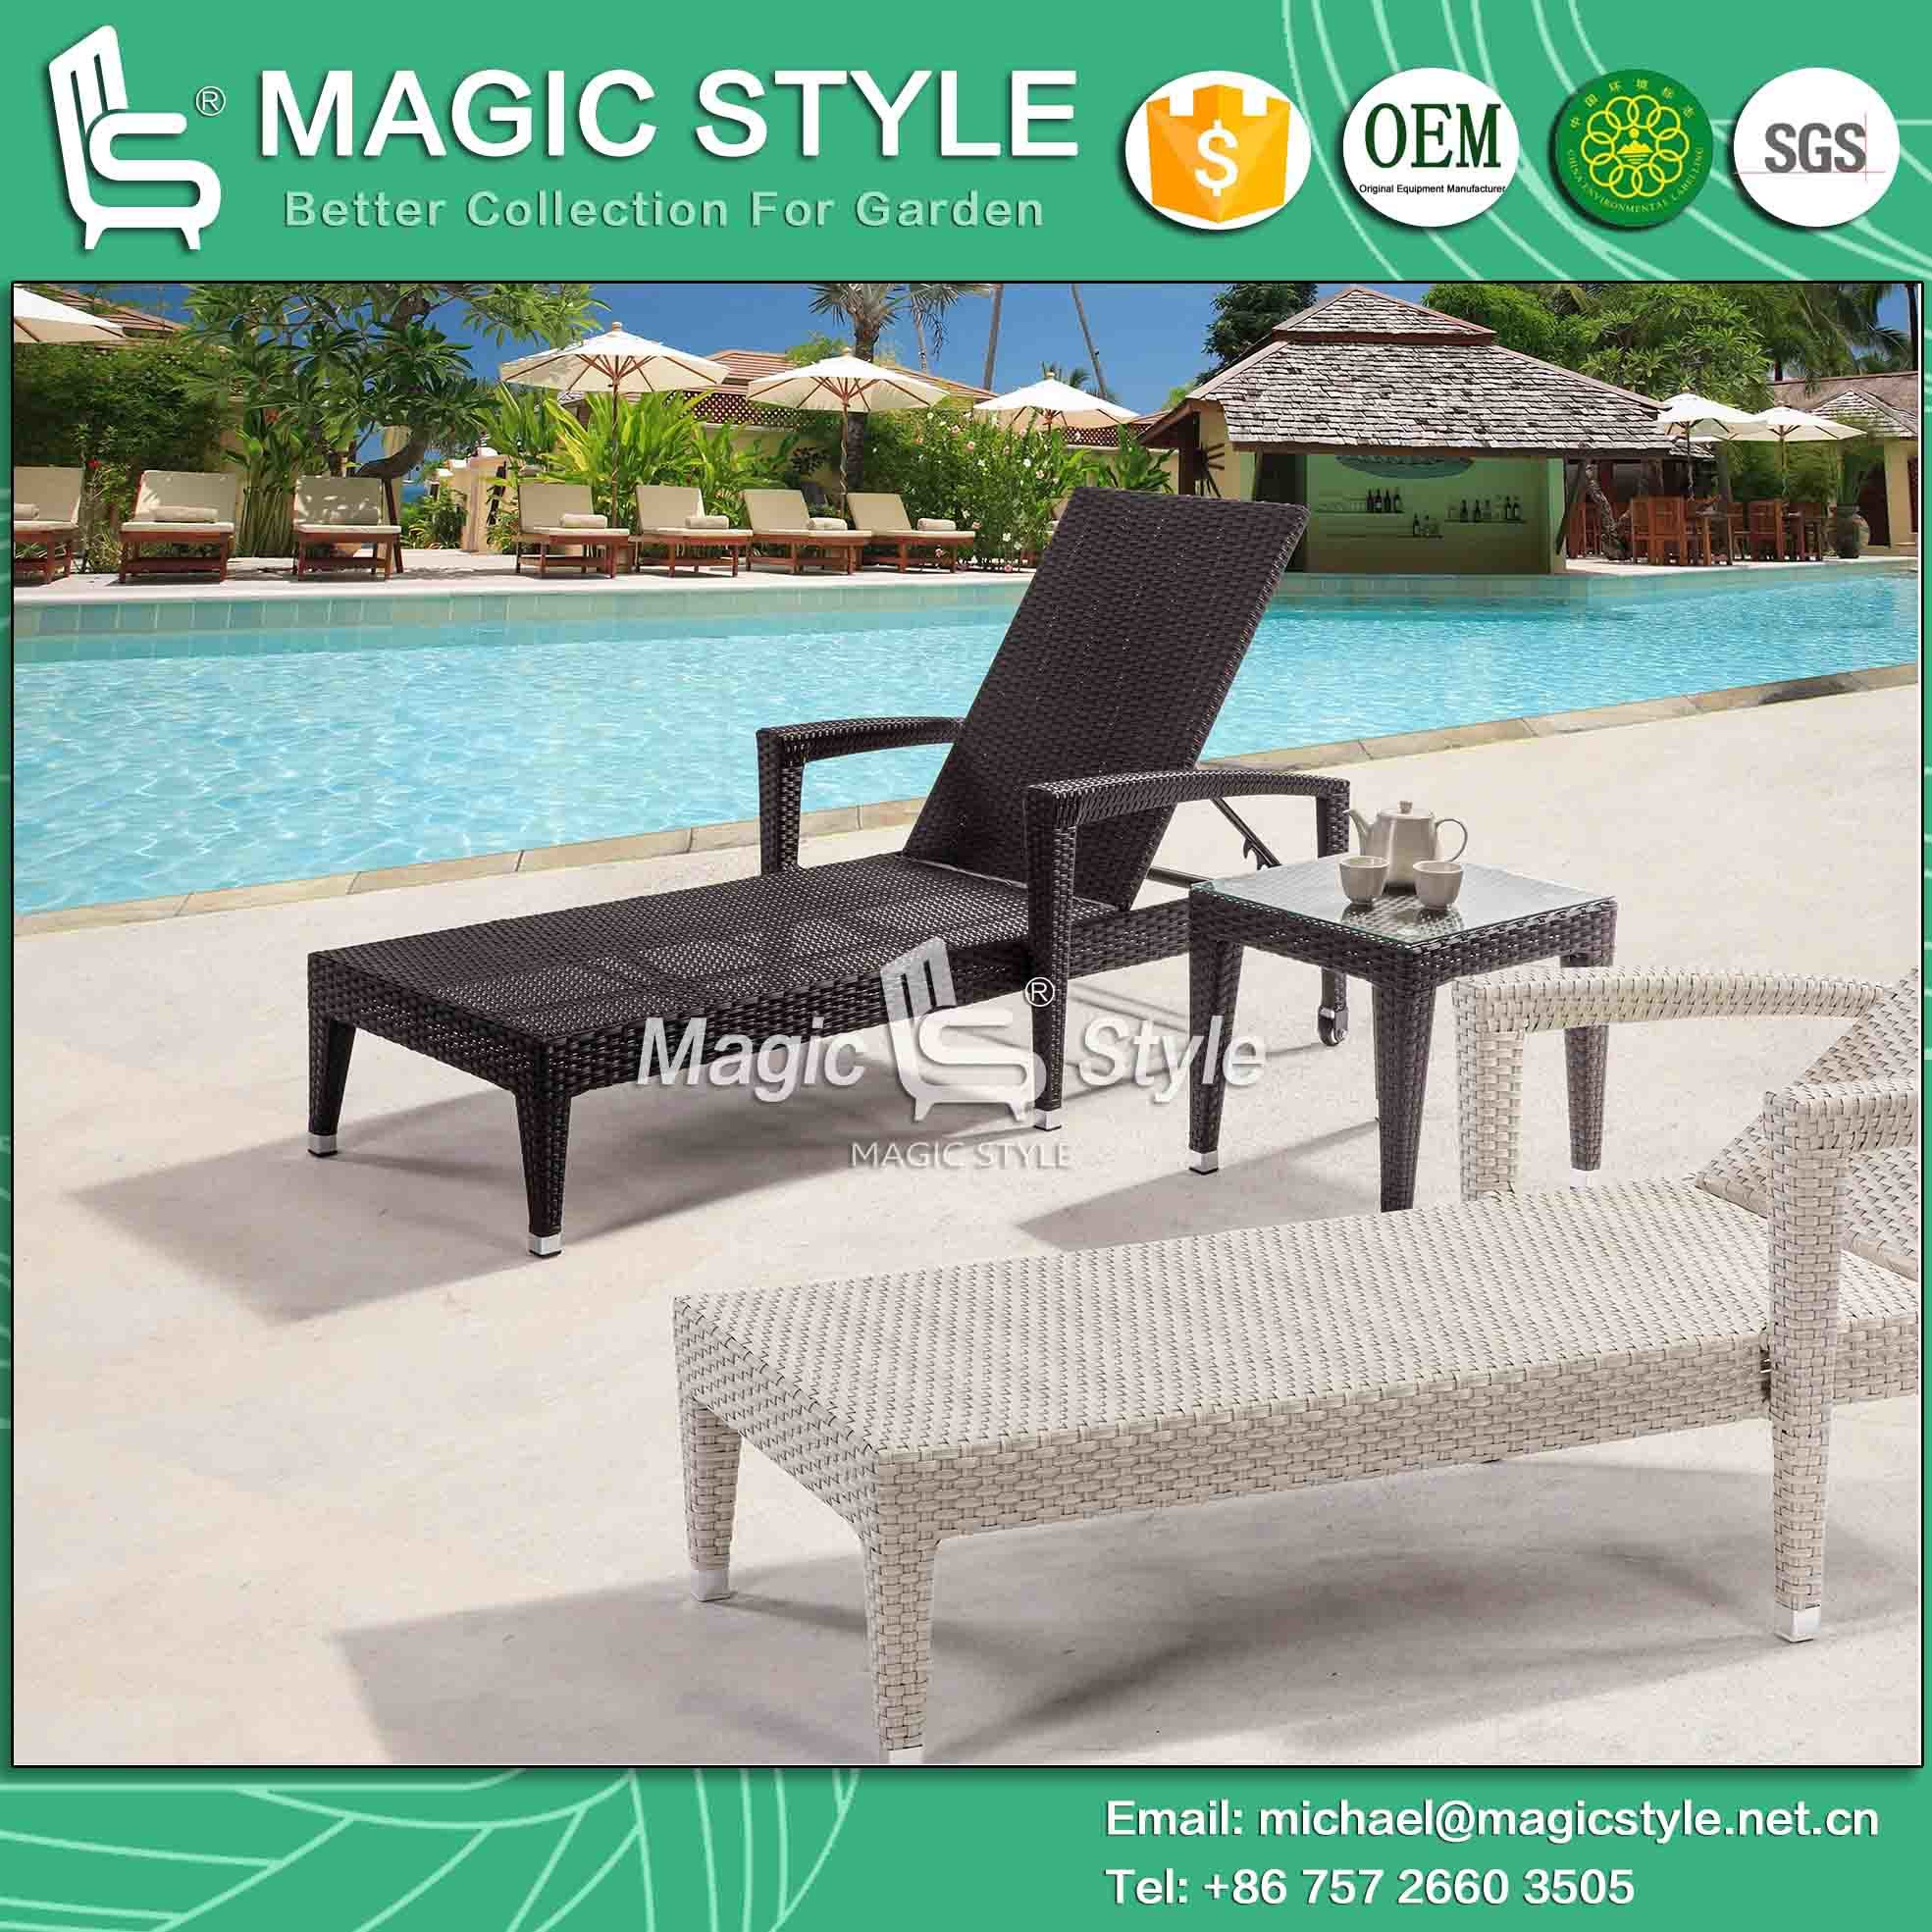 China Wicker Weaving Sun Lounge With Cushion Outdoor Sunlounger Deck Lounger Beach Rattan Bed Leisure Chair